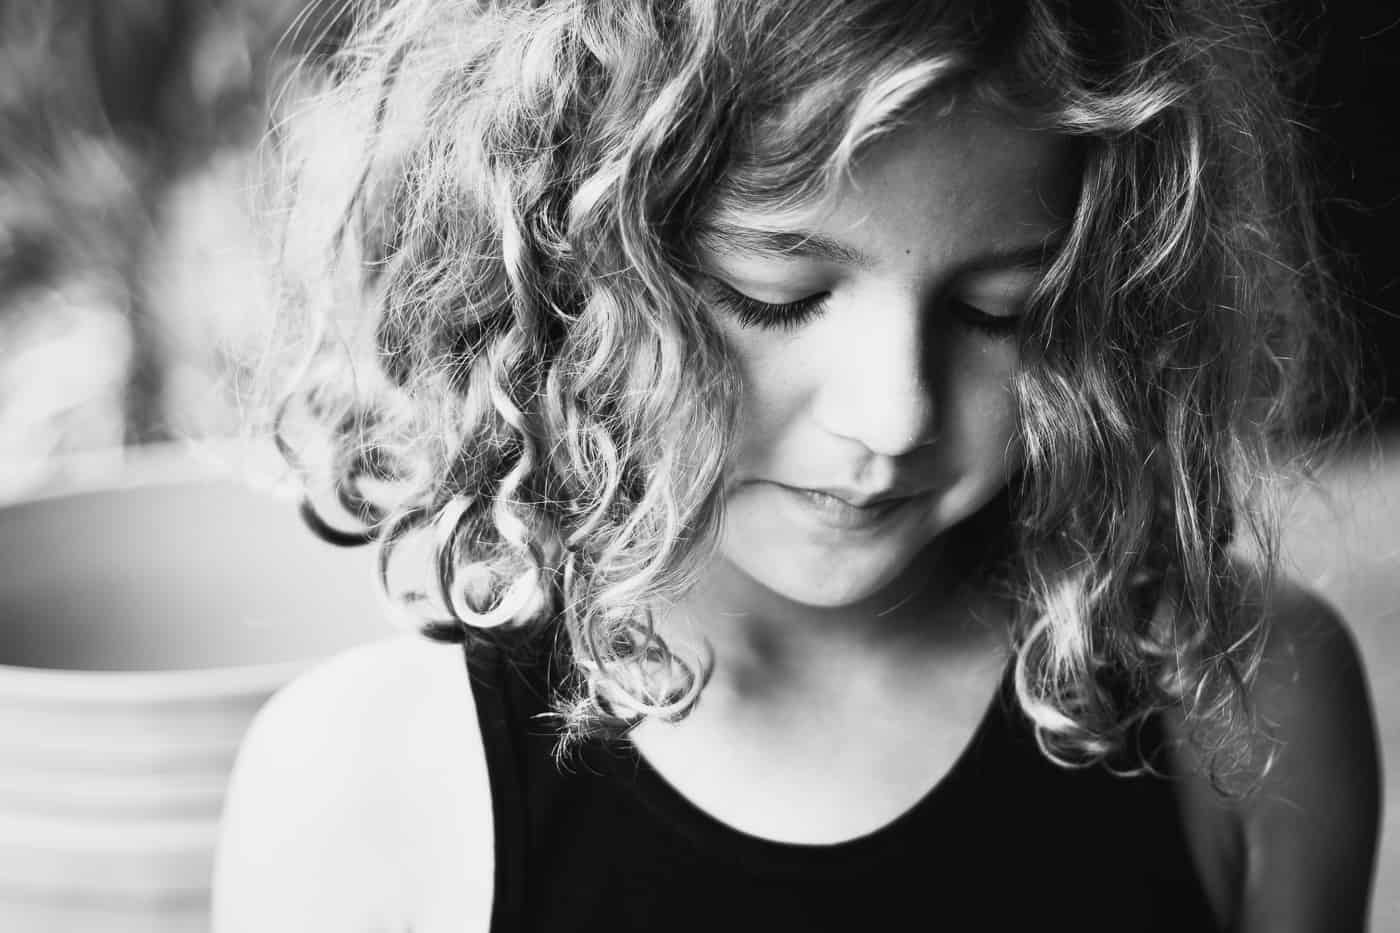 Basic Photography Tips Artistic Portraits Of Kids